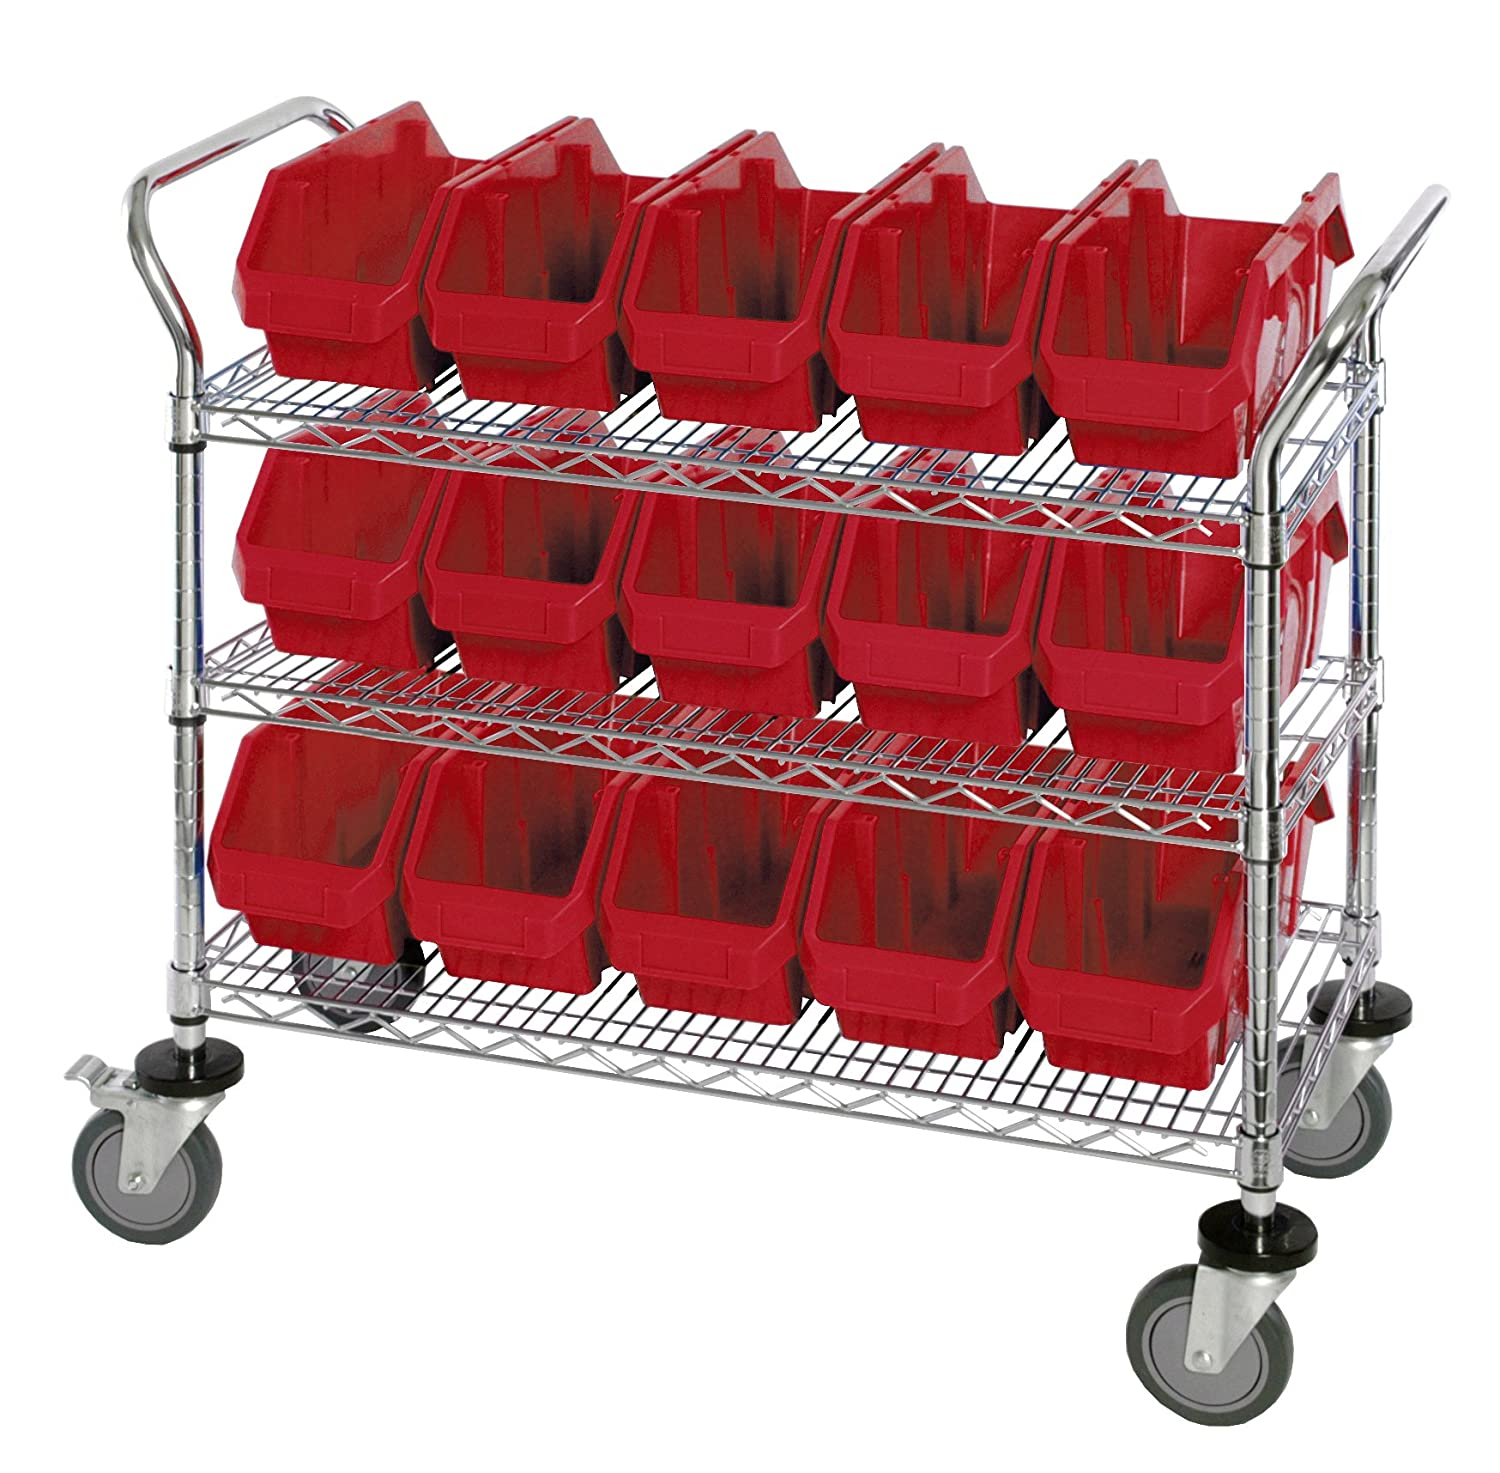 """B003UZRBSG Quantum Storage Systems WRC3-1836-1867RD 3-Tier Complete Wire Mobile Cart System with 15 QP1867 Red QuickPick Bins, Chrome Finish, 37-1/2"""" Height x 36"""" Width x 18"""" Depth 81DSn8N6QXL._SL1500_"""